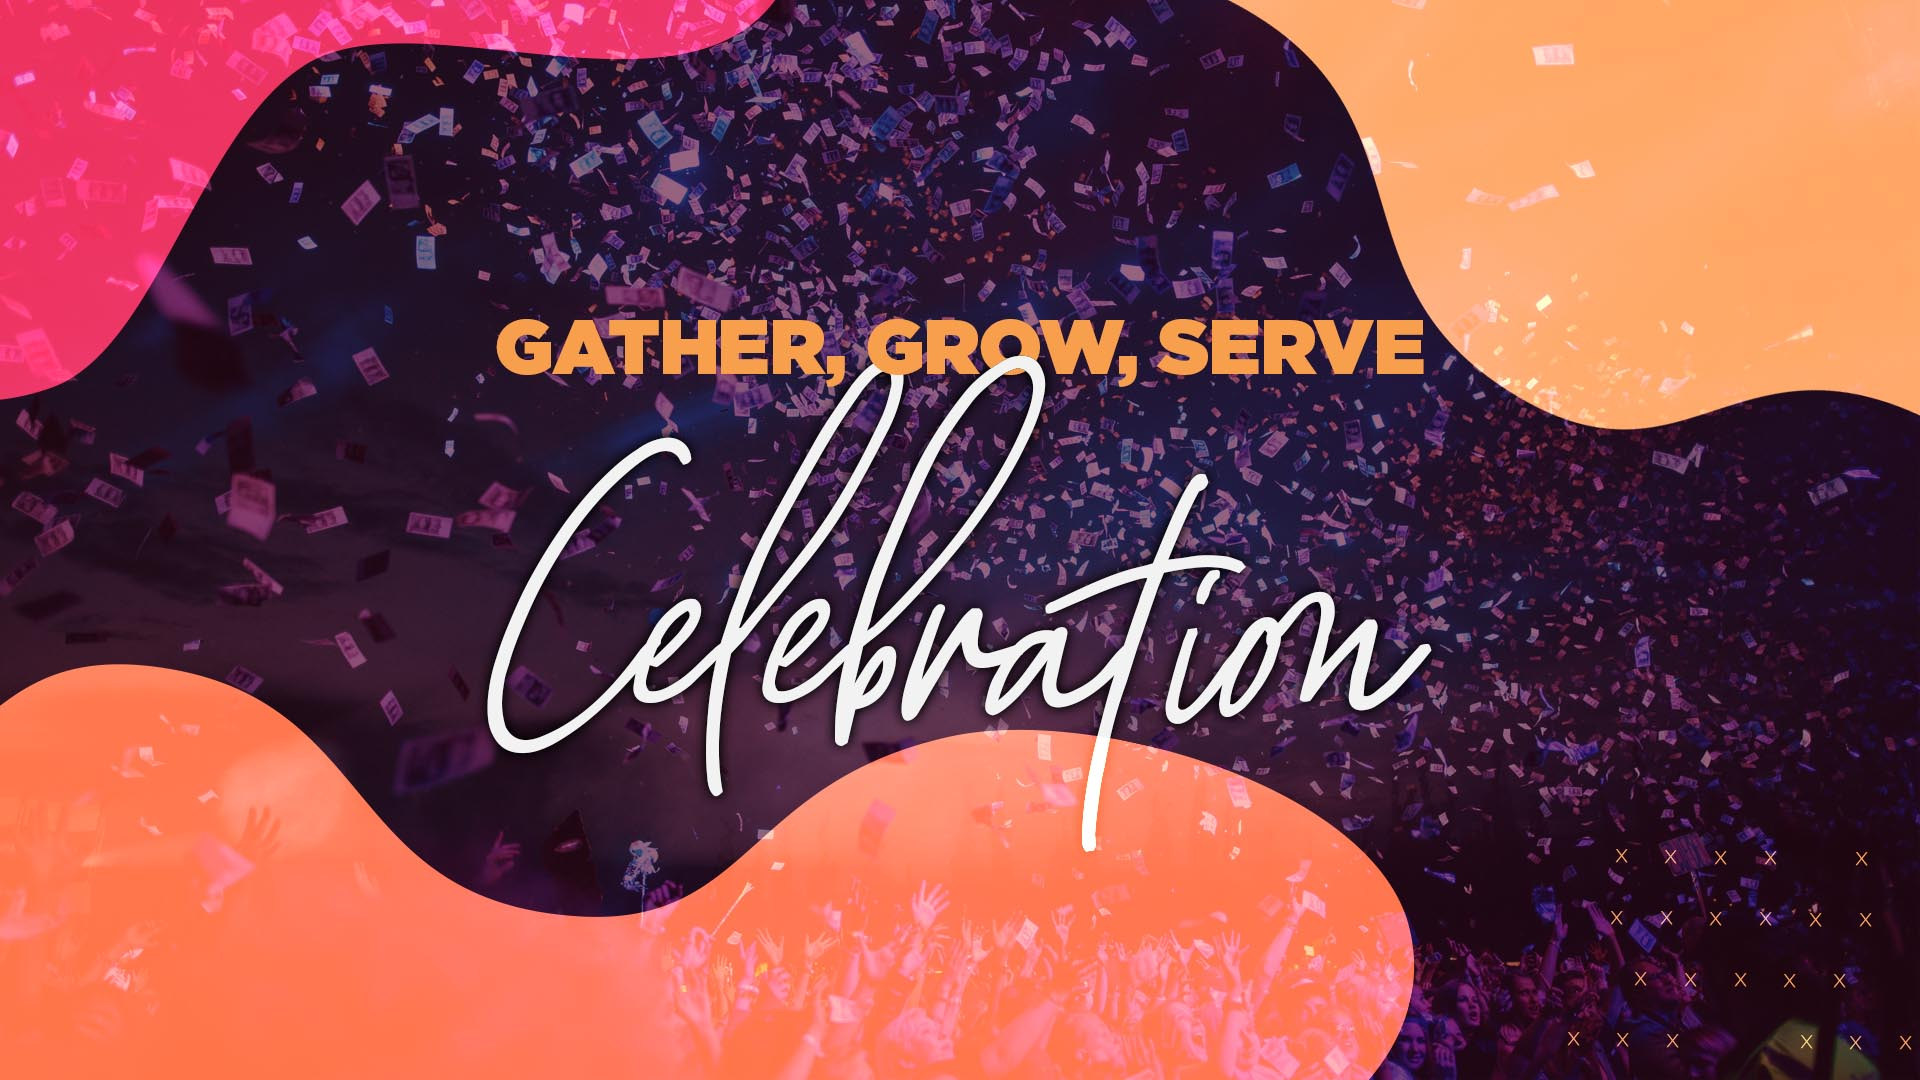 Celebrations Sunday Church Graphics.jpg